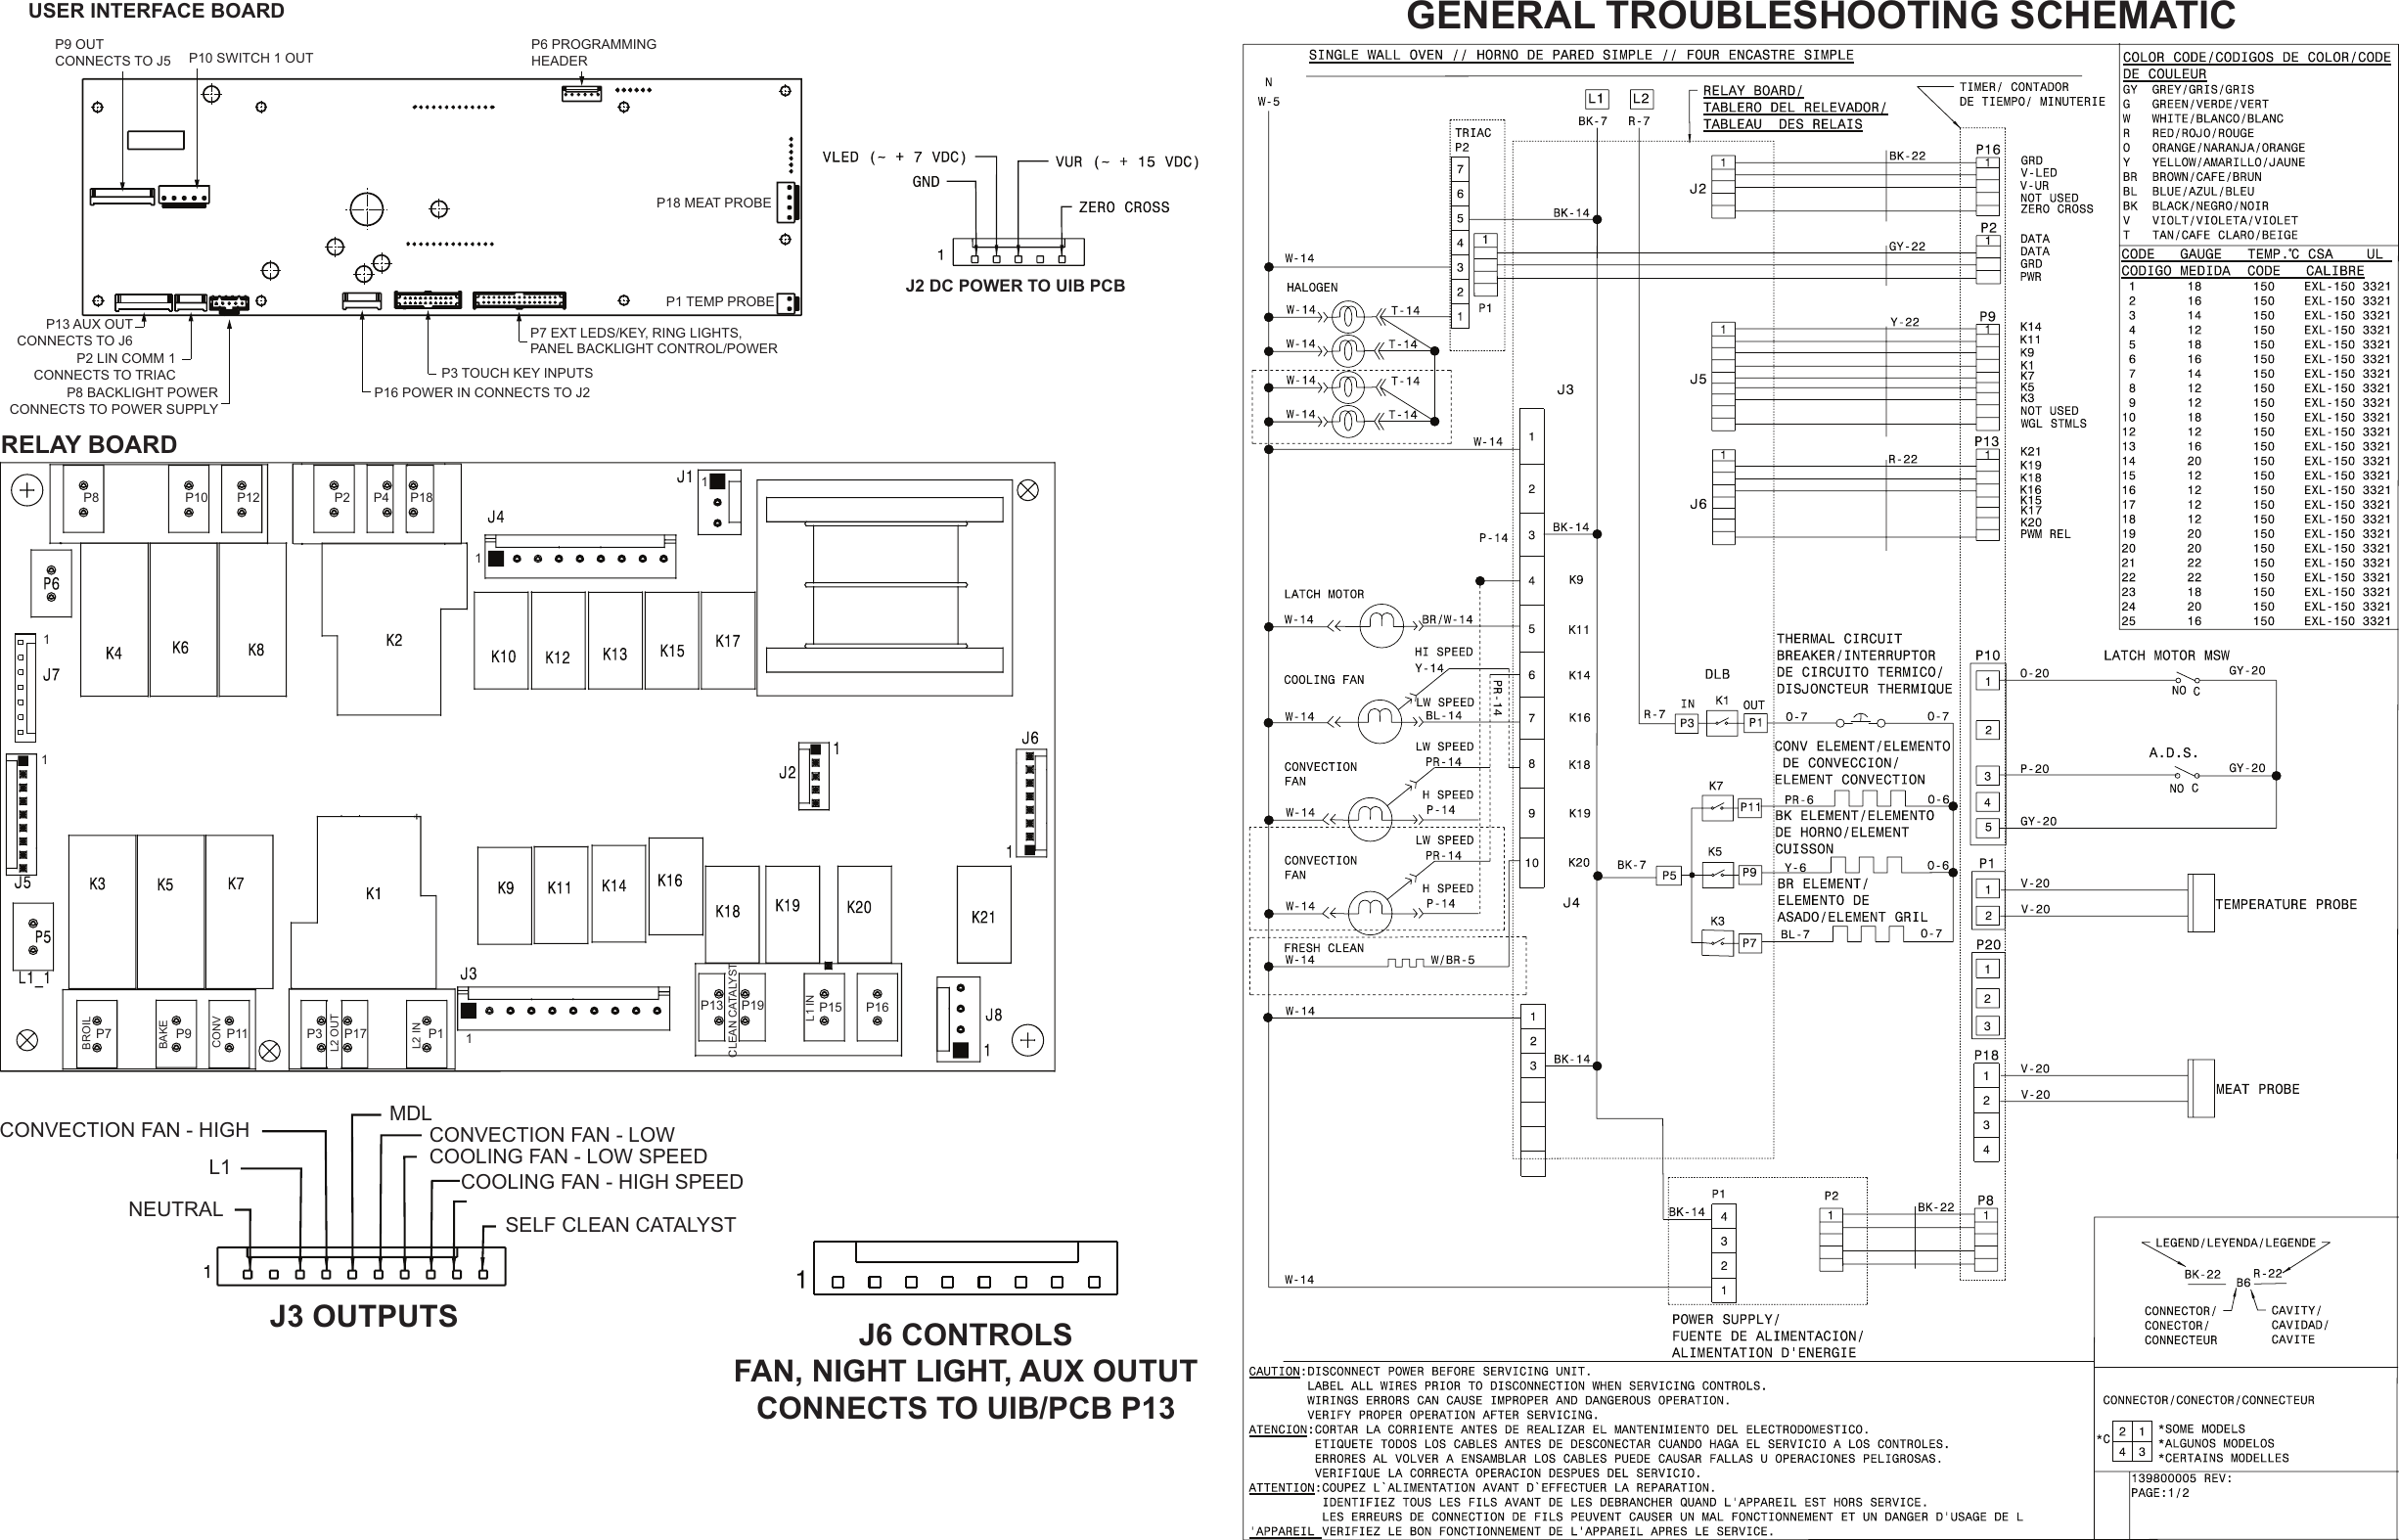 Page 2 of 4 - Electrolux Electrolux-27-Electric-Single-Wall-Oven-With-Iq-Touch-Controls-Ei27Ew35Ps-Wiring-Diagram-  Electrolux-27-electric-single-wall-oven-with-iq-touch-controls-ei27ew35ps-wiring-diagram